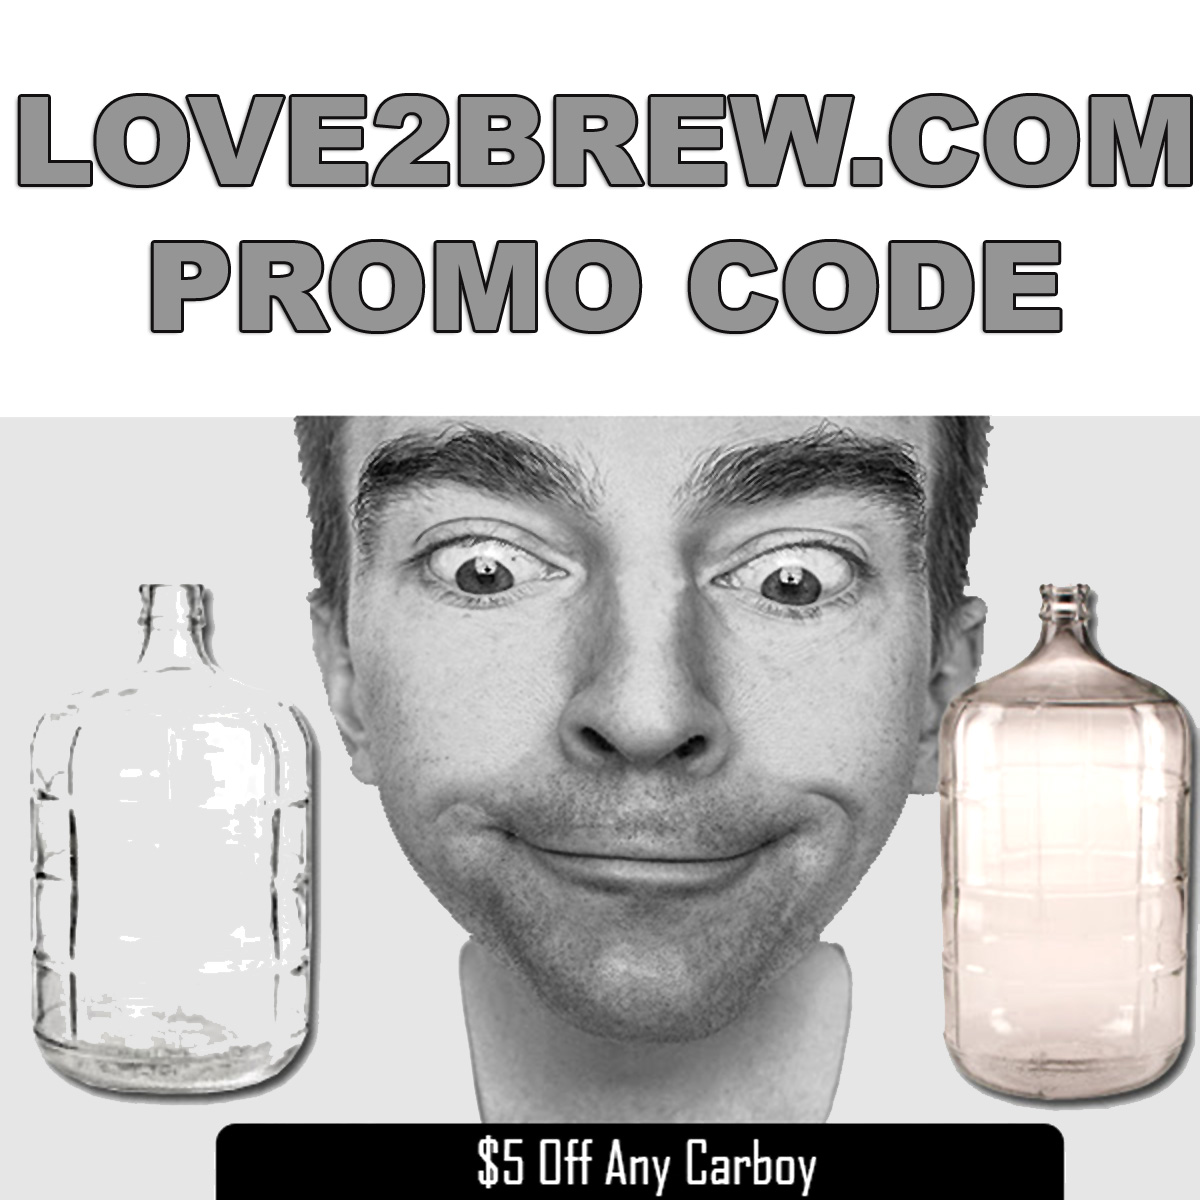 Home Wine Making Coupon Codes for Save $5 On Any Carboy at Love2Brew.com With This Love 2 Brew Promo Code Coupon Code